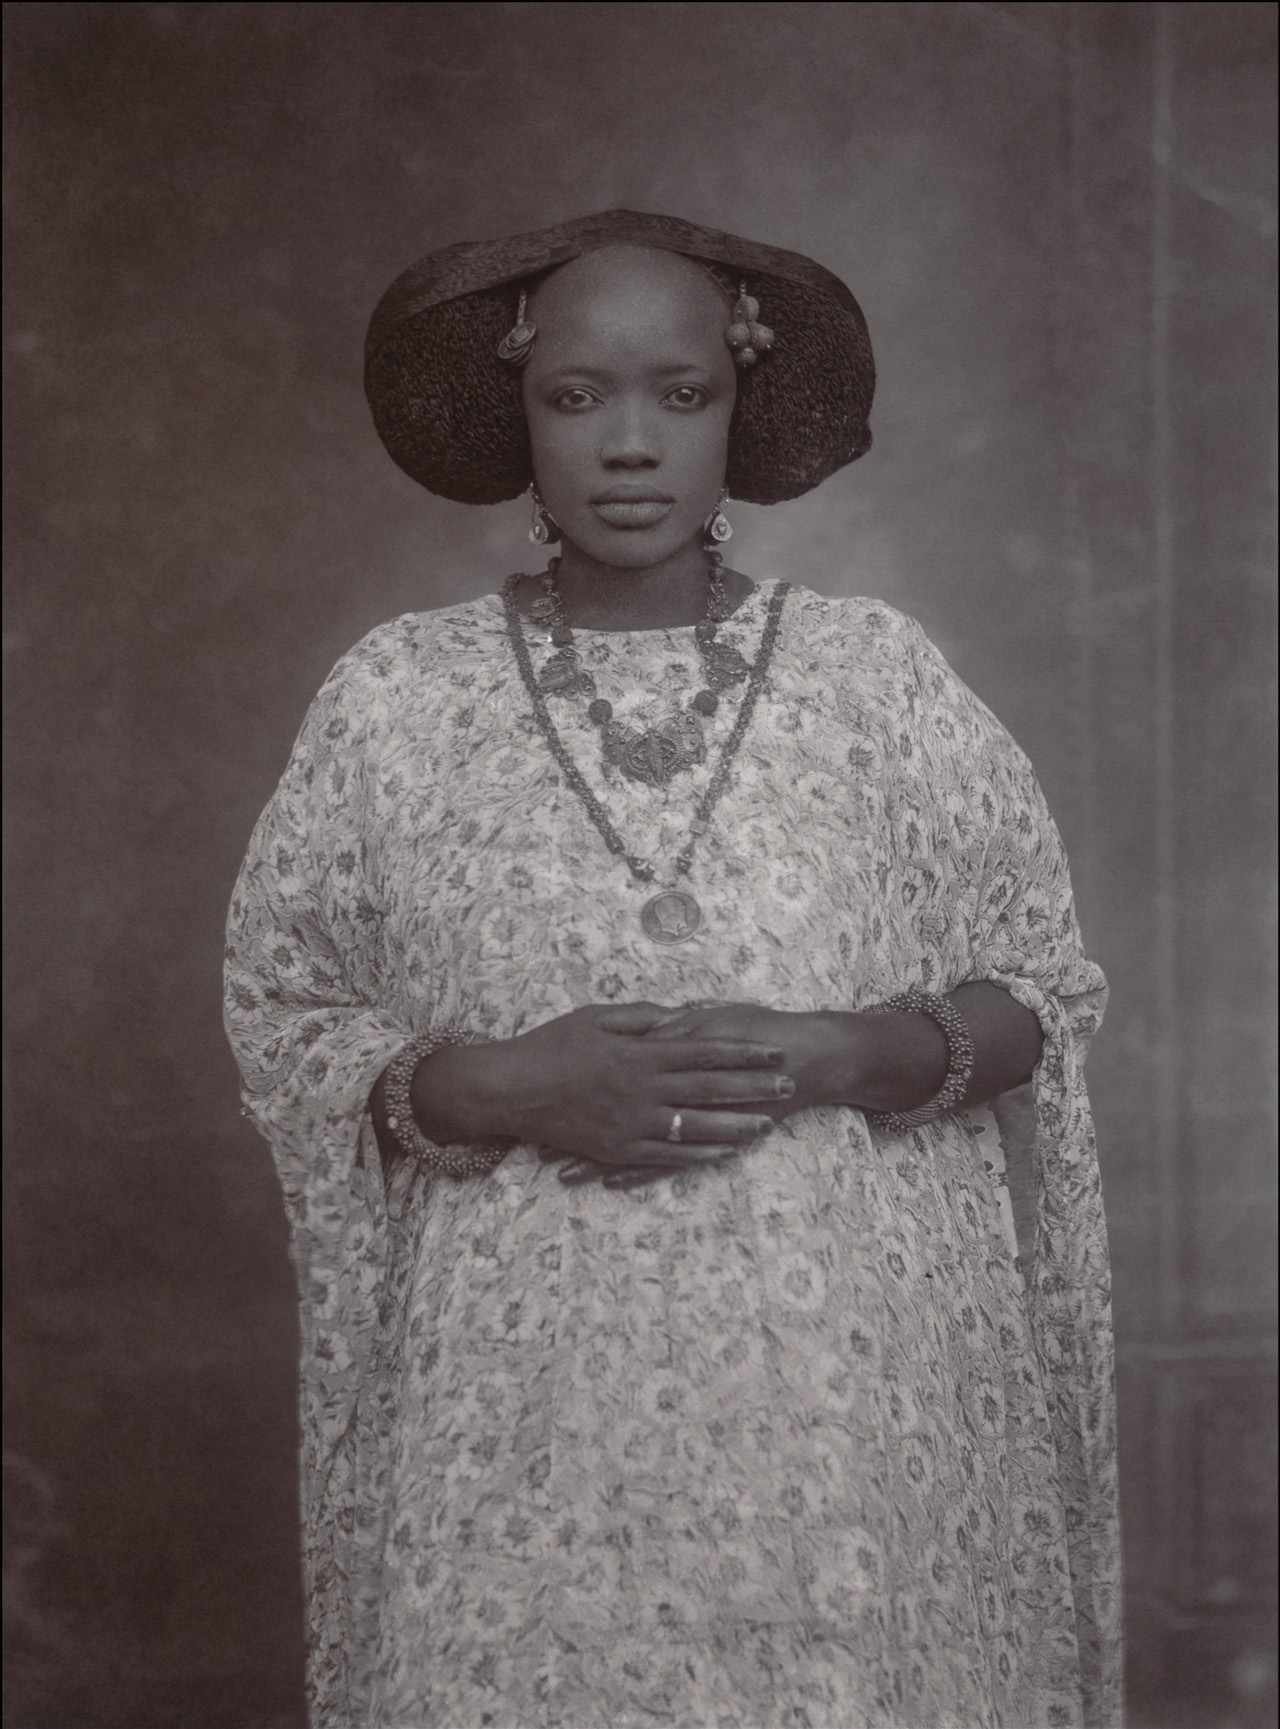 Illuminating the history of west african portrait photography